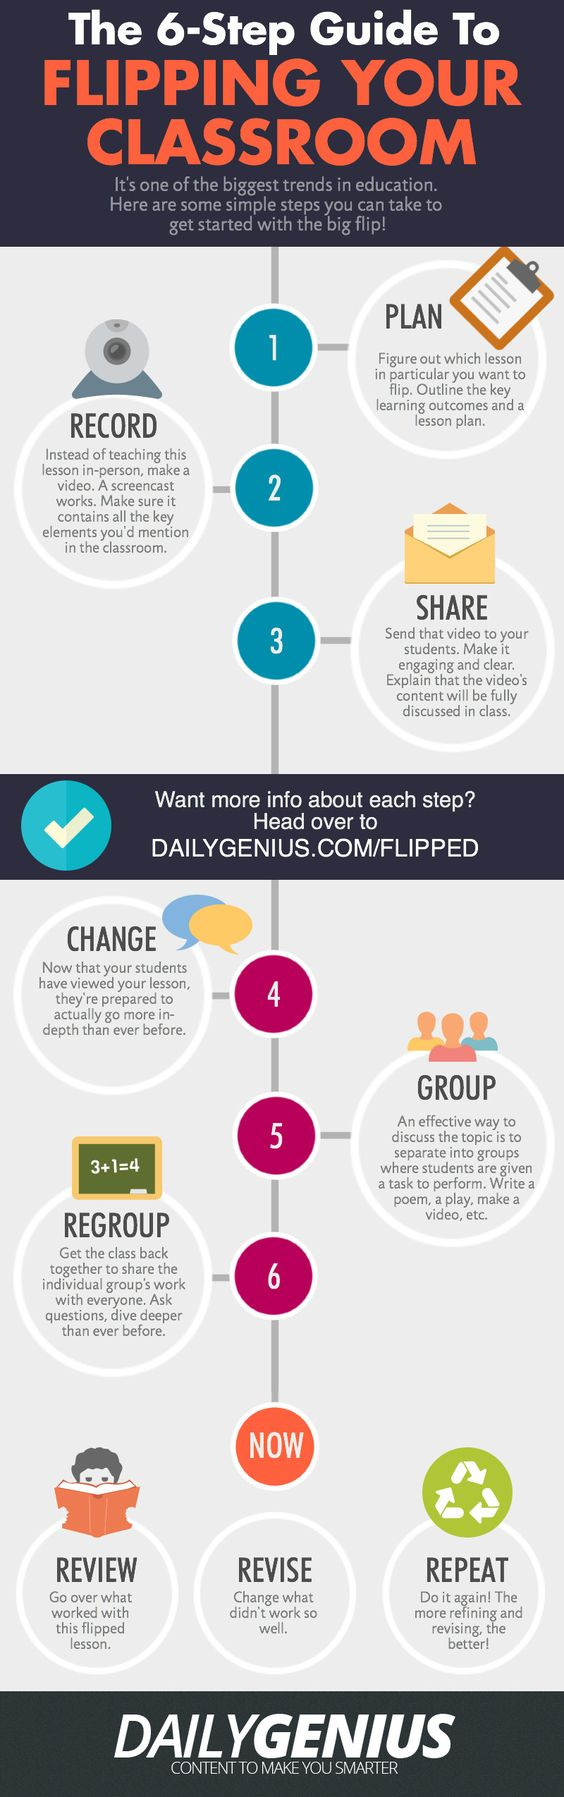 6 Step Guide to Flipping Your Classroom